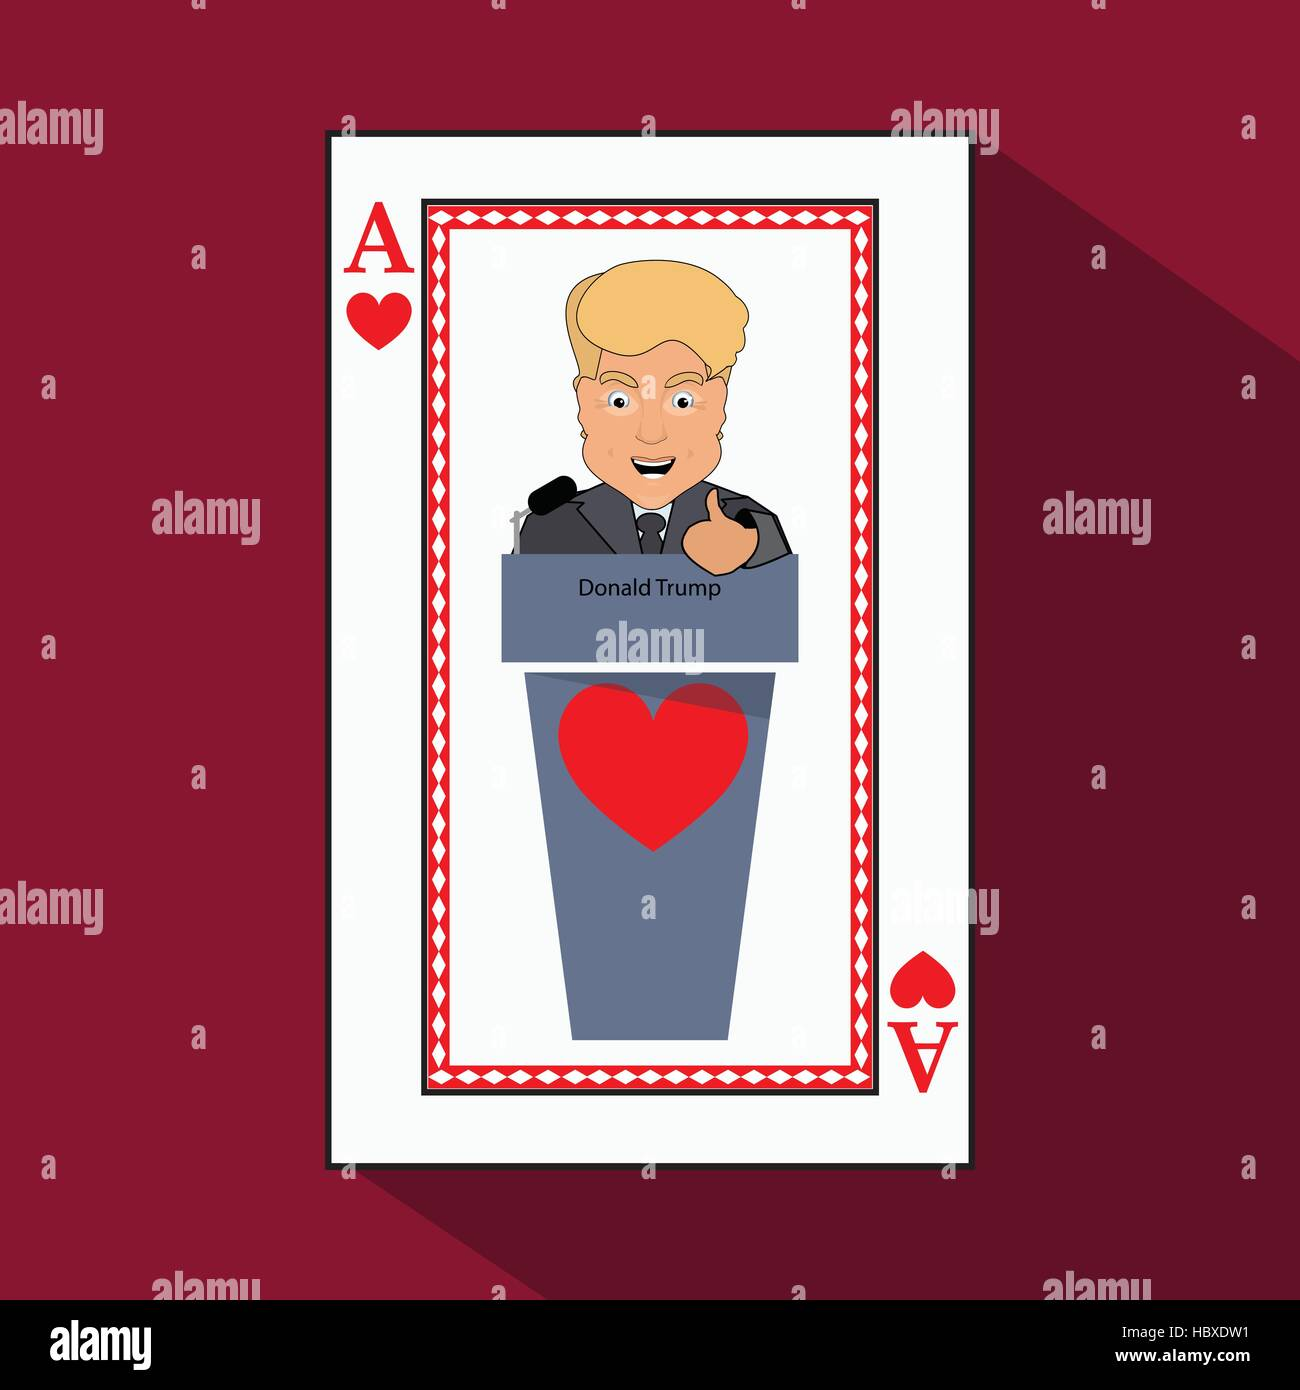 To give to Donald Trump an interview a tribune, to speak in the microphone, propaganda, a hand up. Card ace heart. - Stock Vector